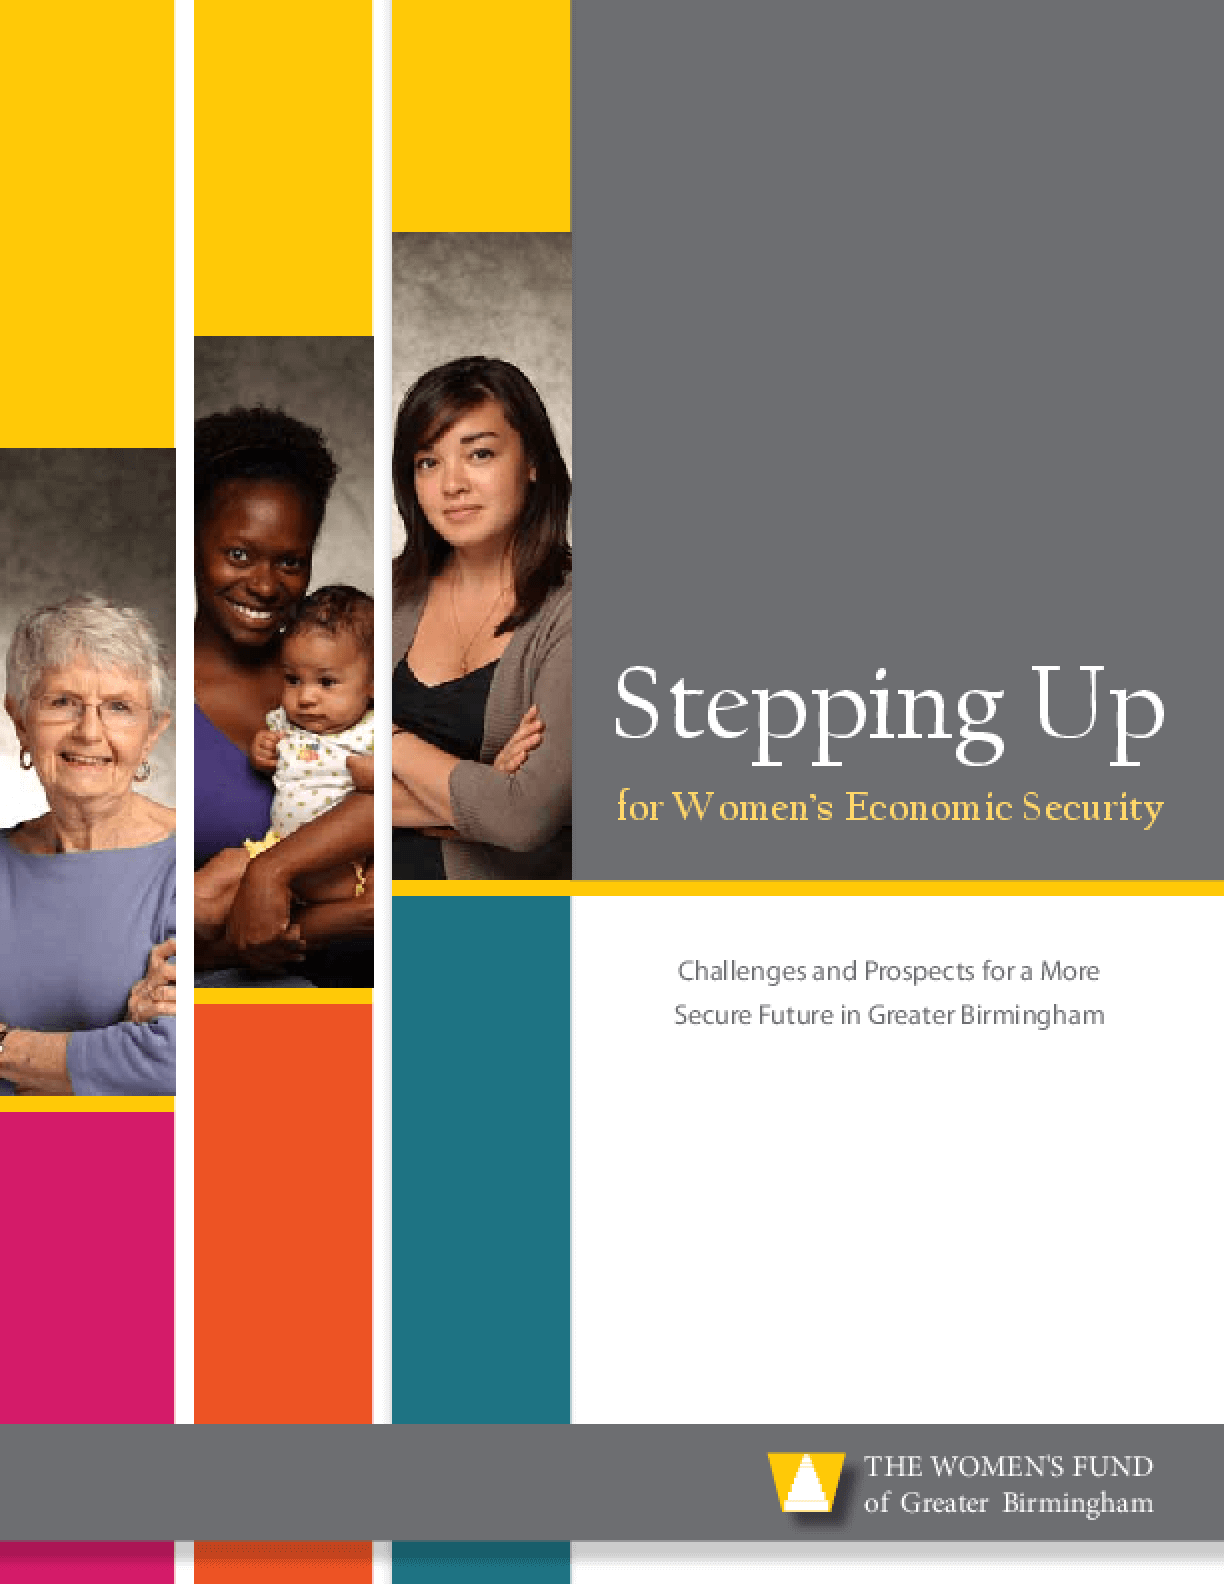 Stepping Up for Women's Economic Security Report